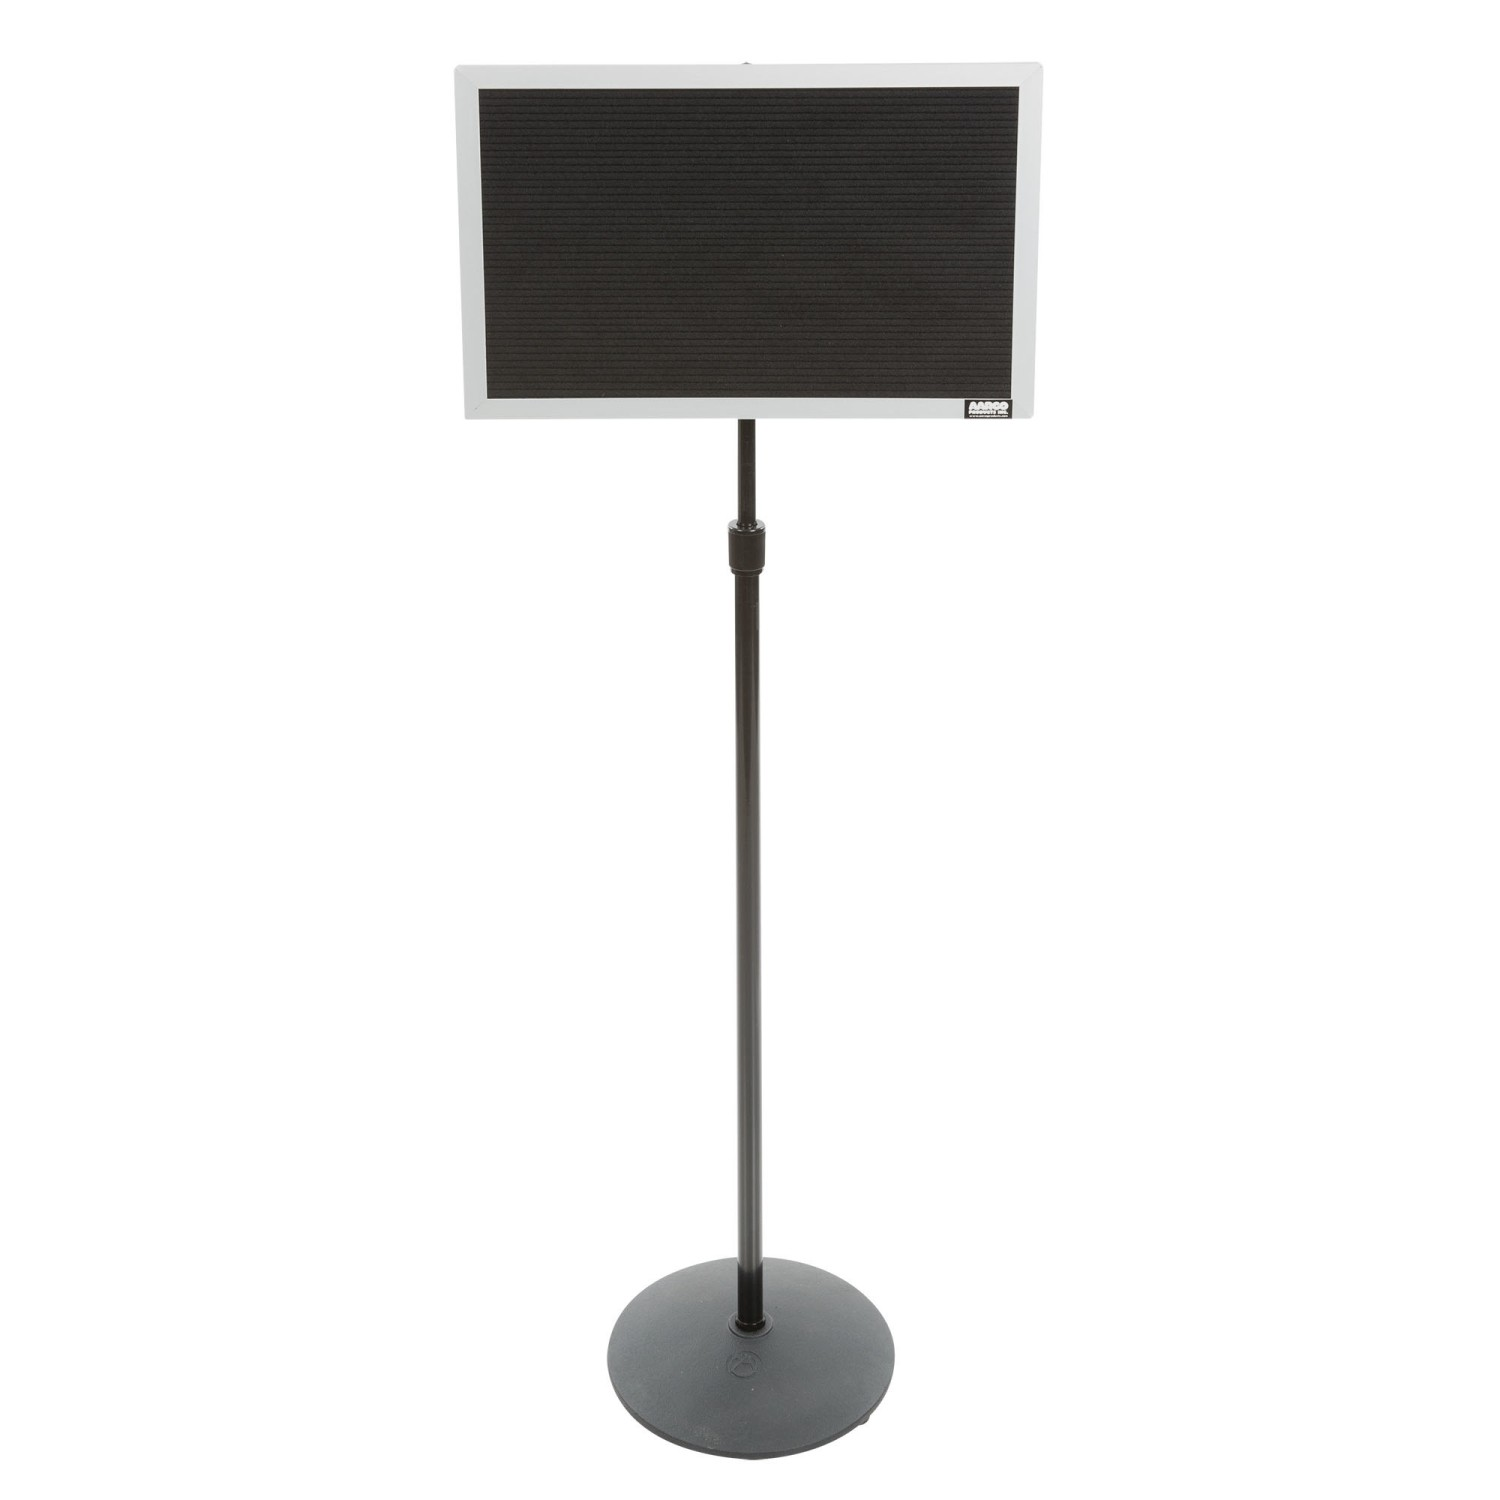 """Aarco Products SMD1218 Single Pedestal Free Standing Open Face Changeable Letter Board, 12""""H x 18""""W"""